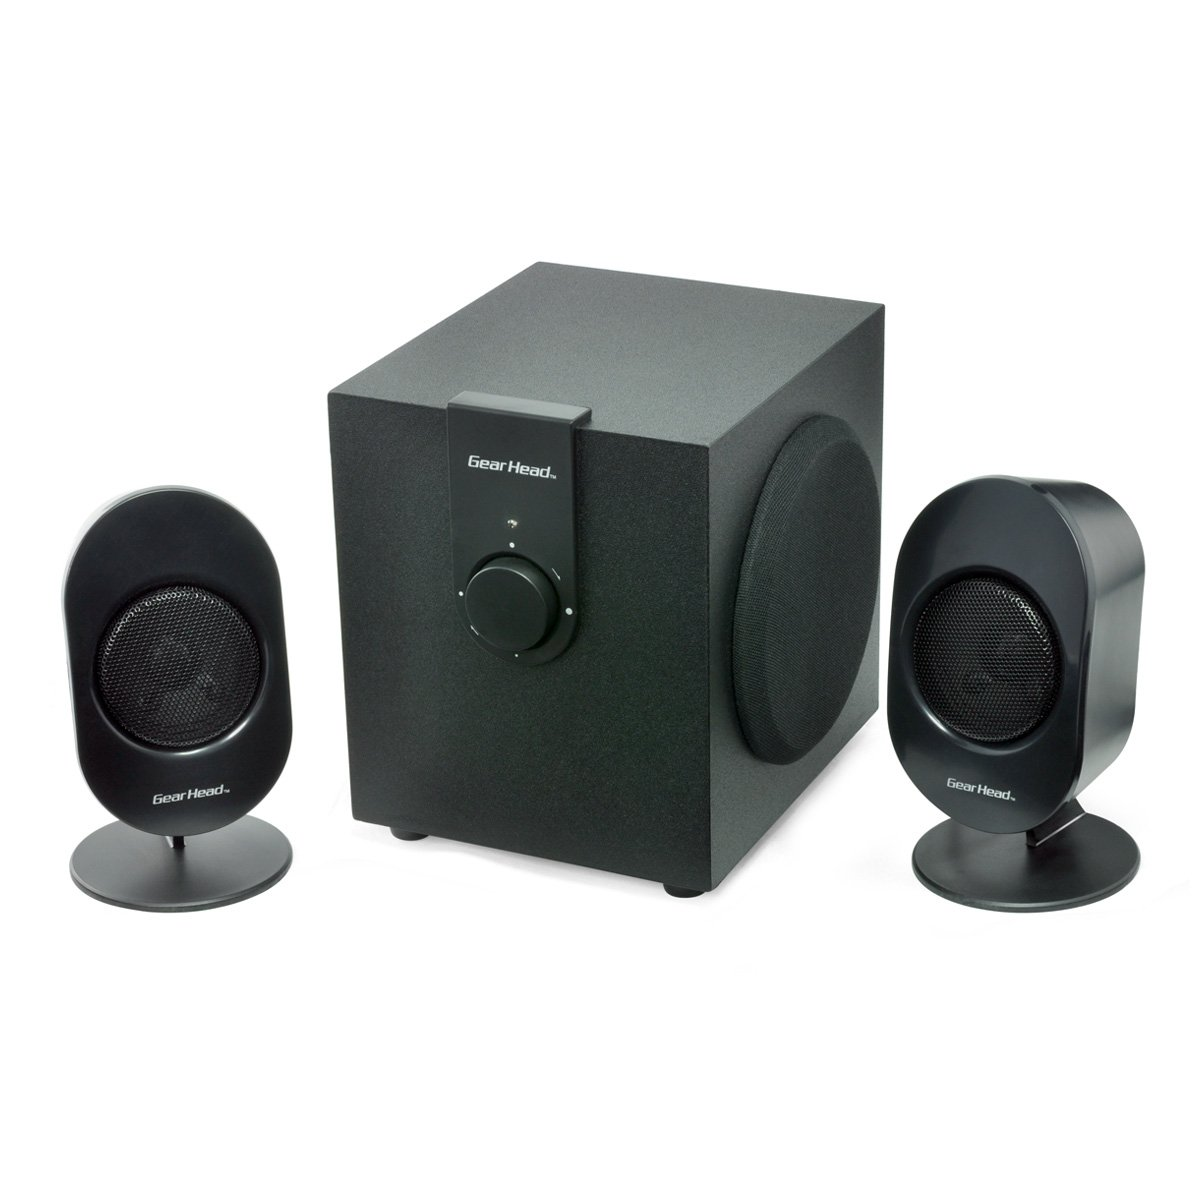 Gear Head 2.1 Studio Speaker System (SP3500ACB)